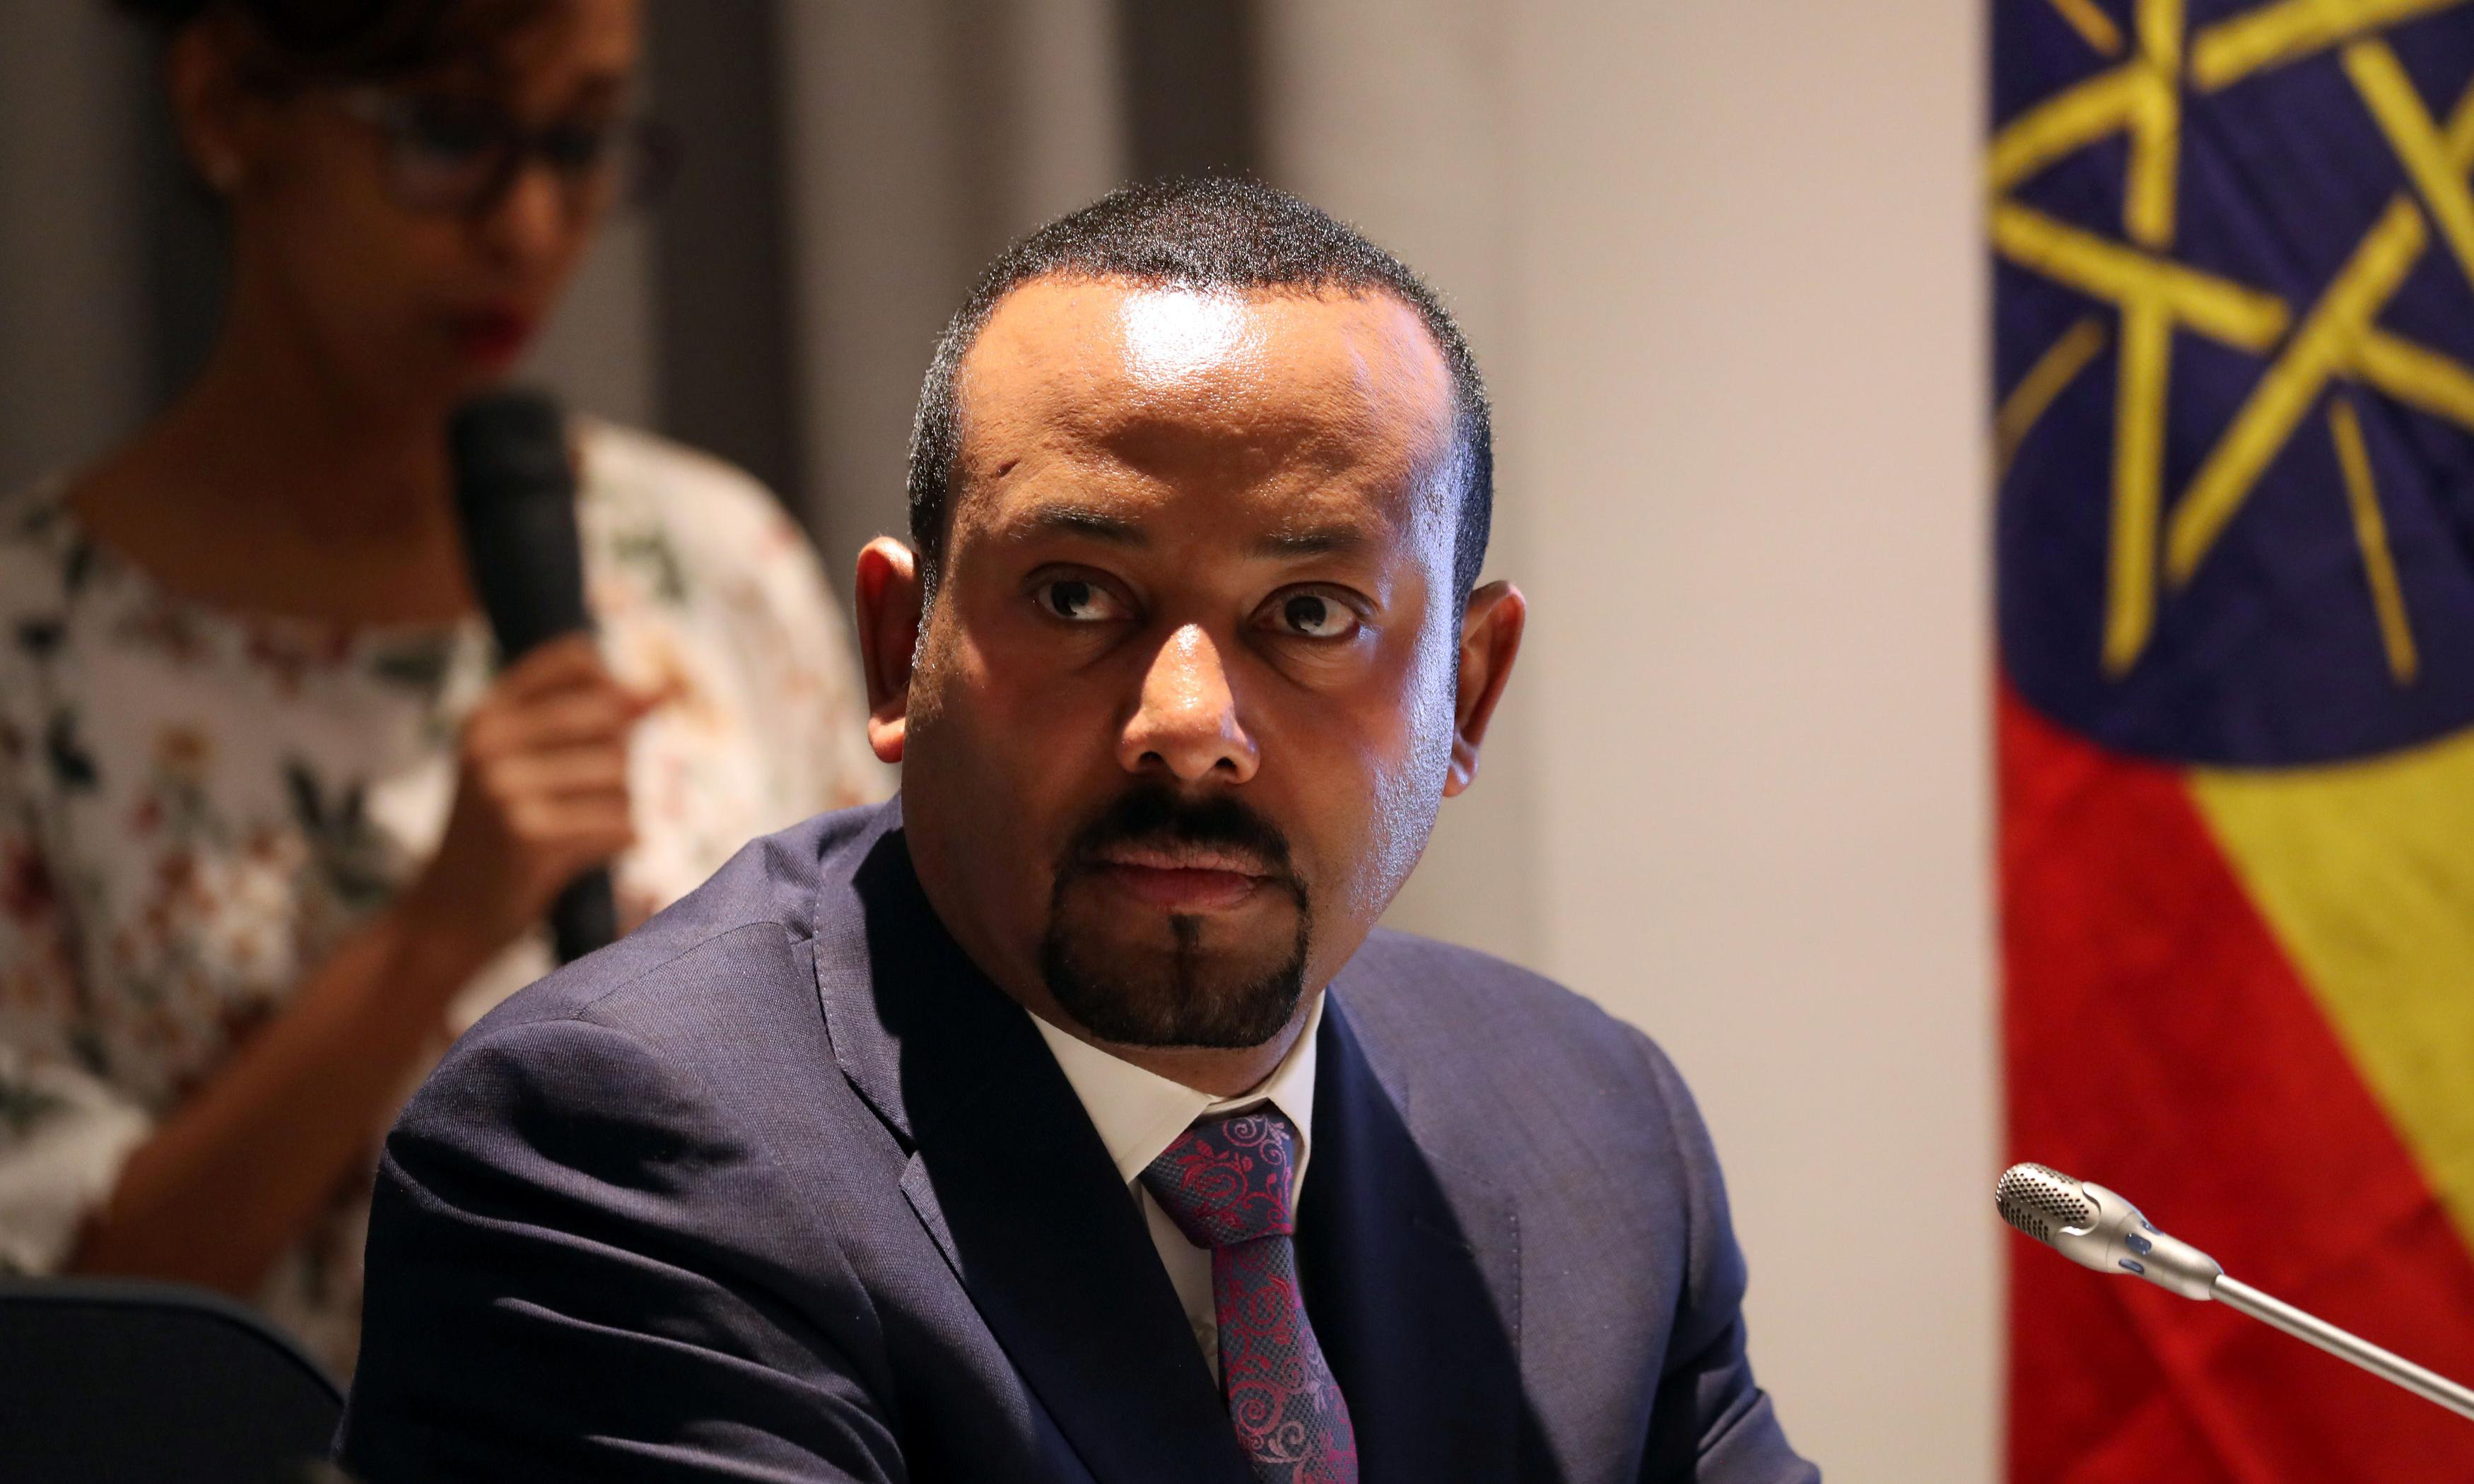 Nobel peace prize winner Abiy Ahmed embroiled in media row